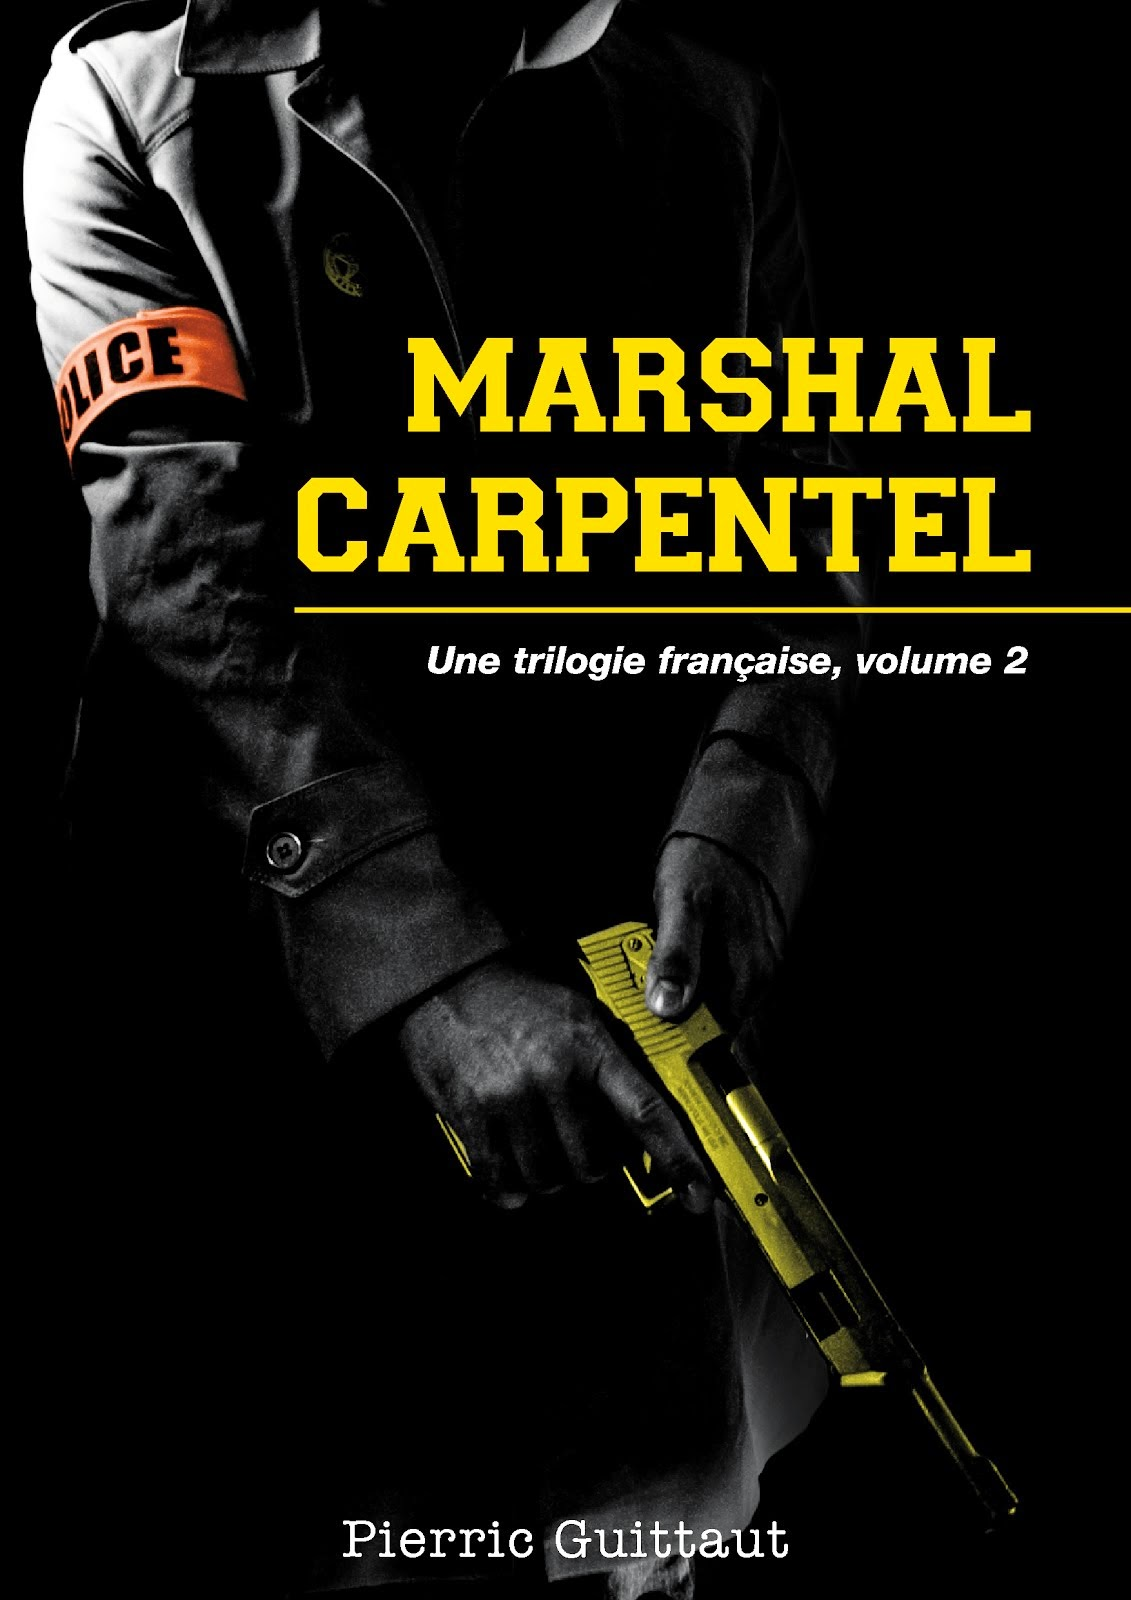 Marshal Carpentel